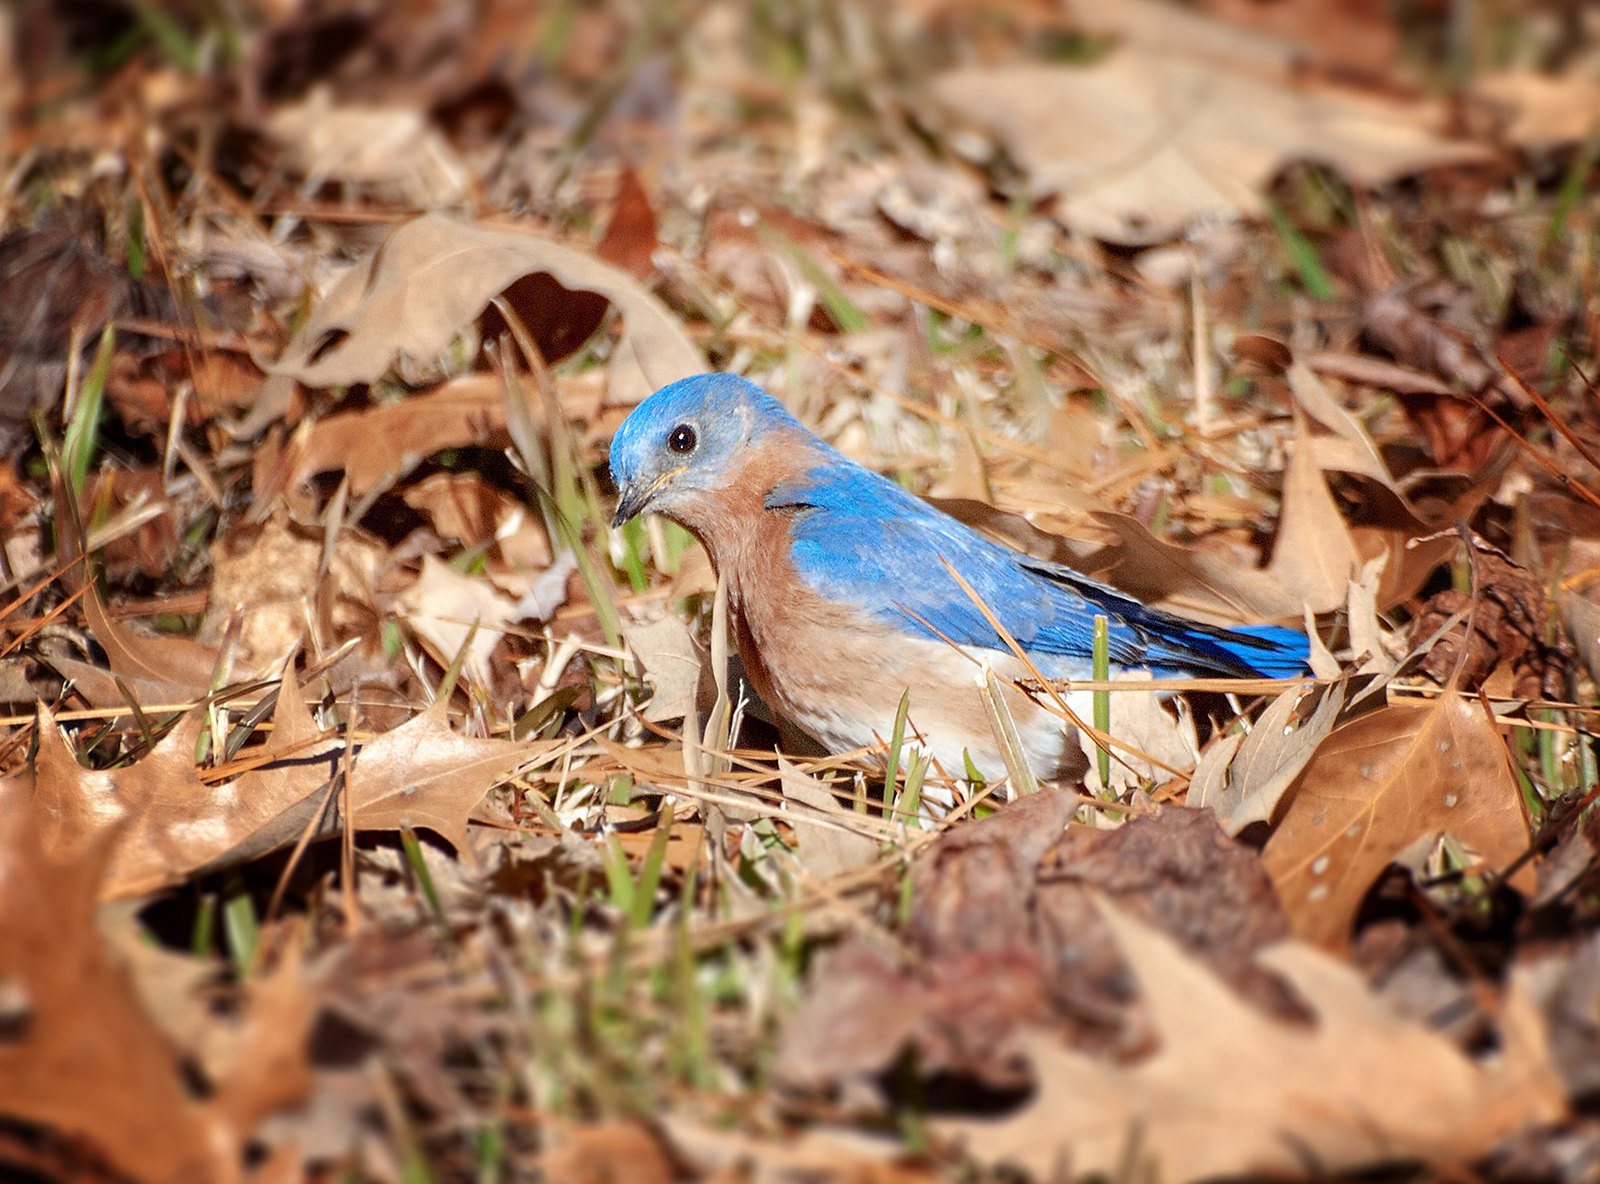 EASTERN BLUEBIRD hoping to find something to eat amongst the leaves.